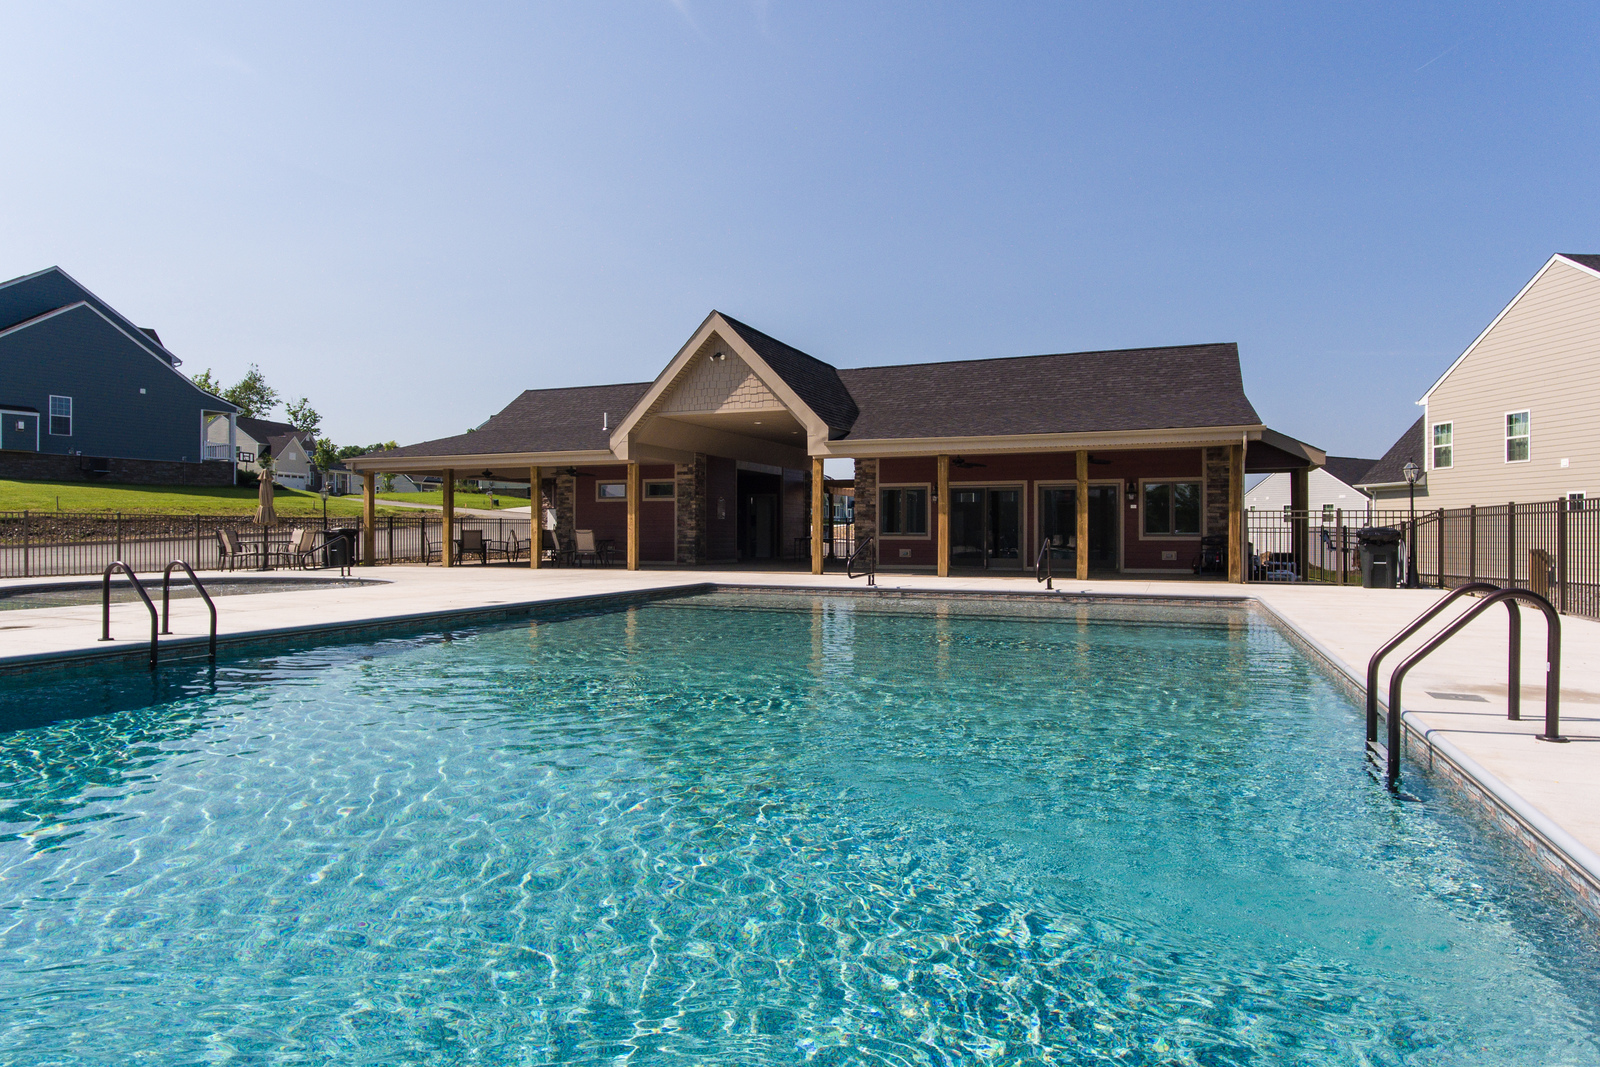 "<a href=""#visit"">Schedule a tour</a>&nbsp;of this beautiful community, featuring a pool and clubhouse, today!"